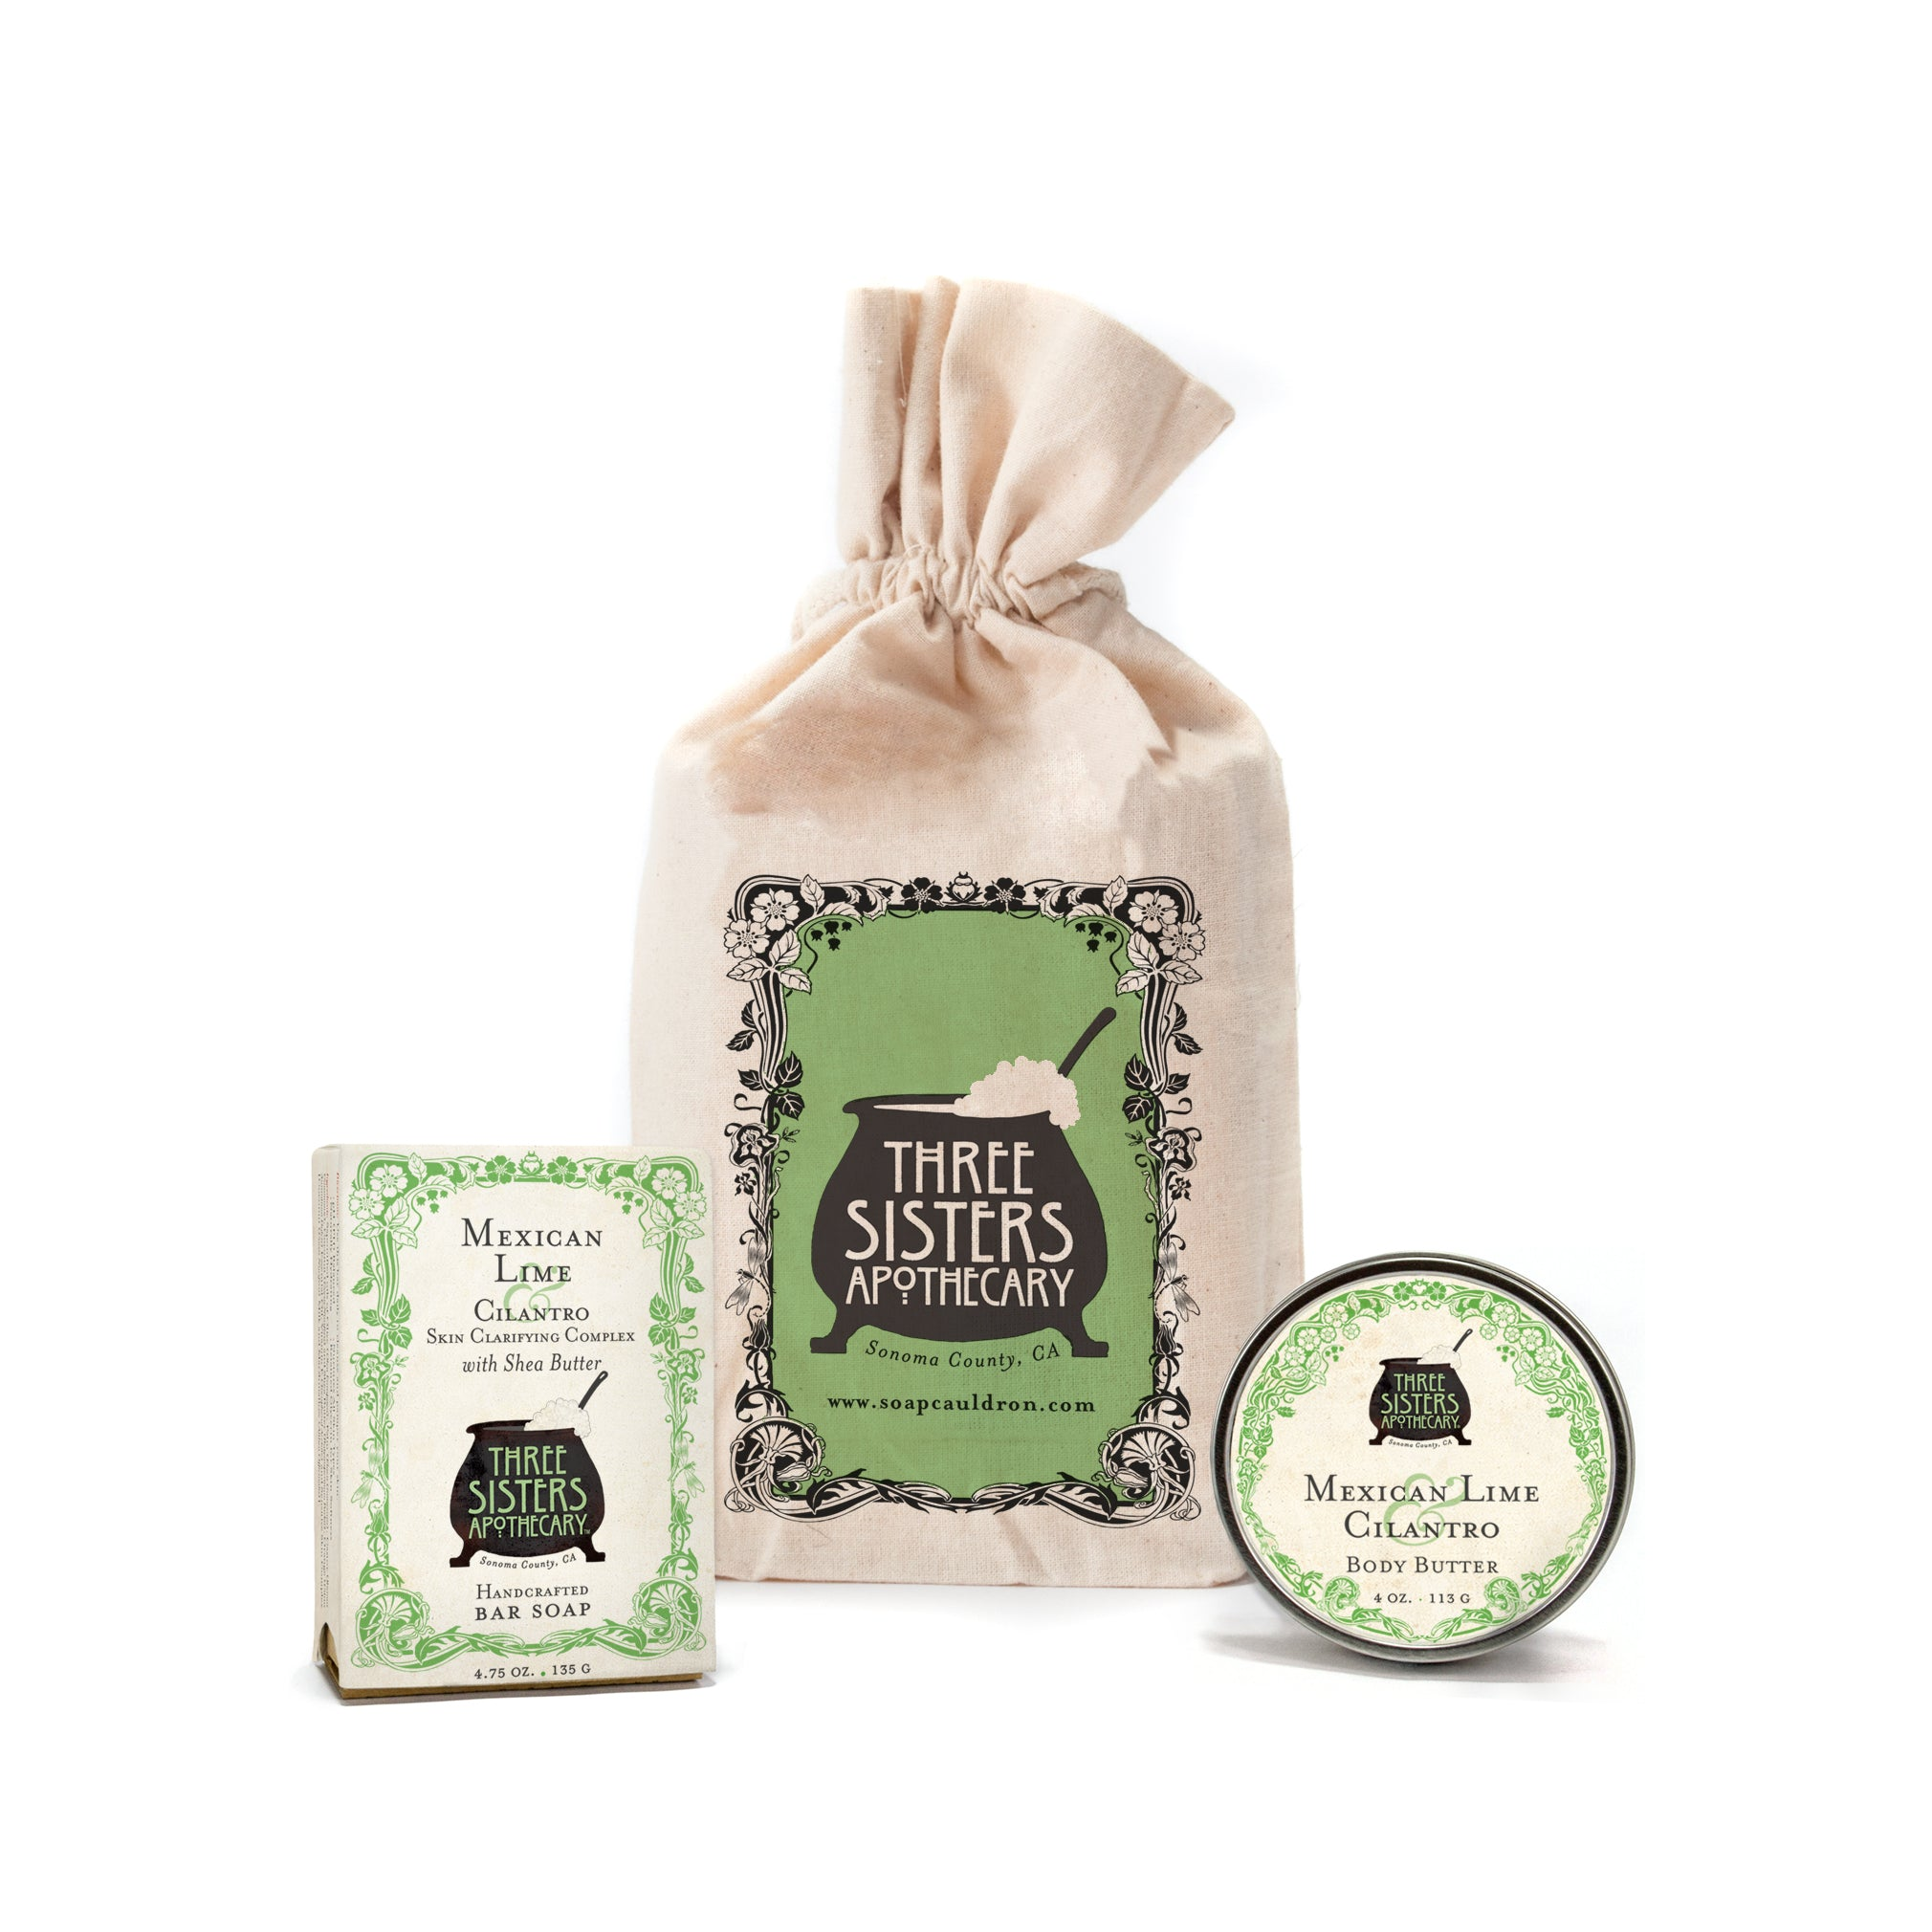 Bar Soap and Body Butter Gift Set